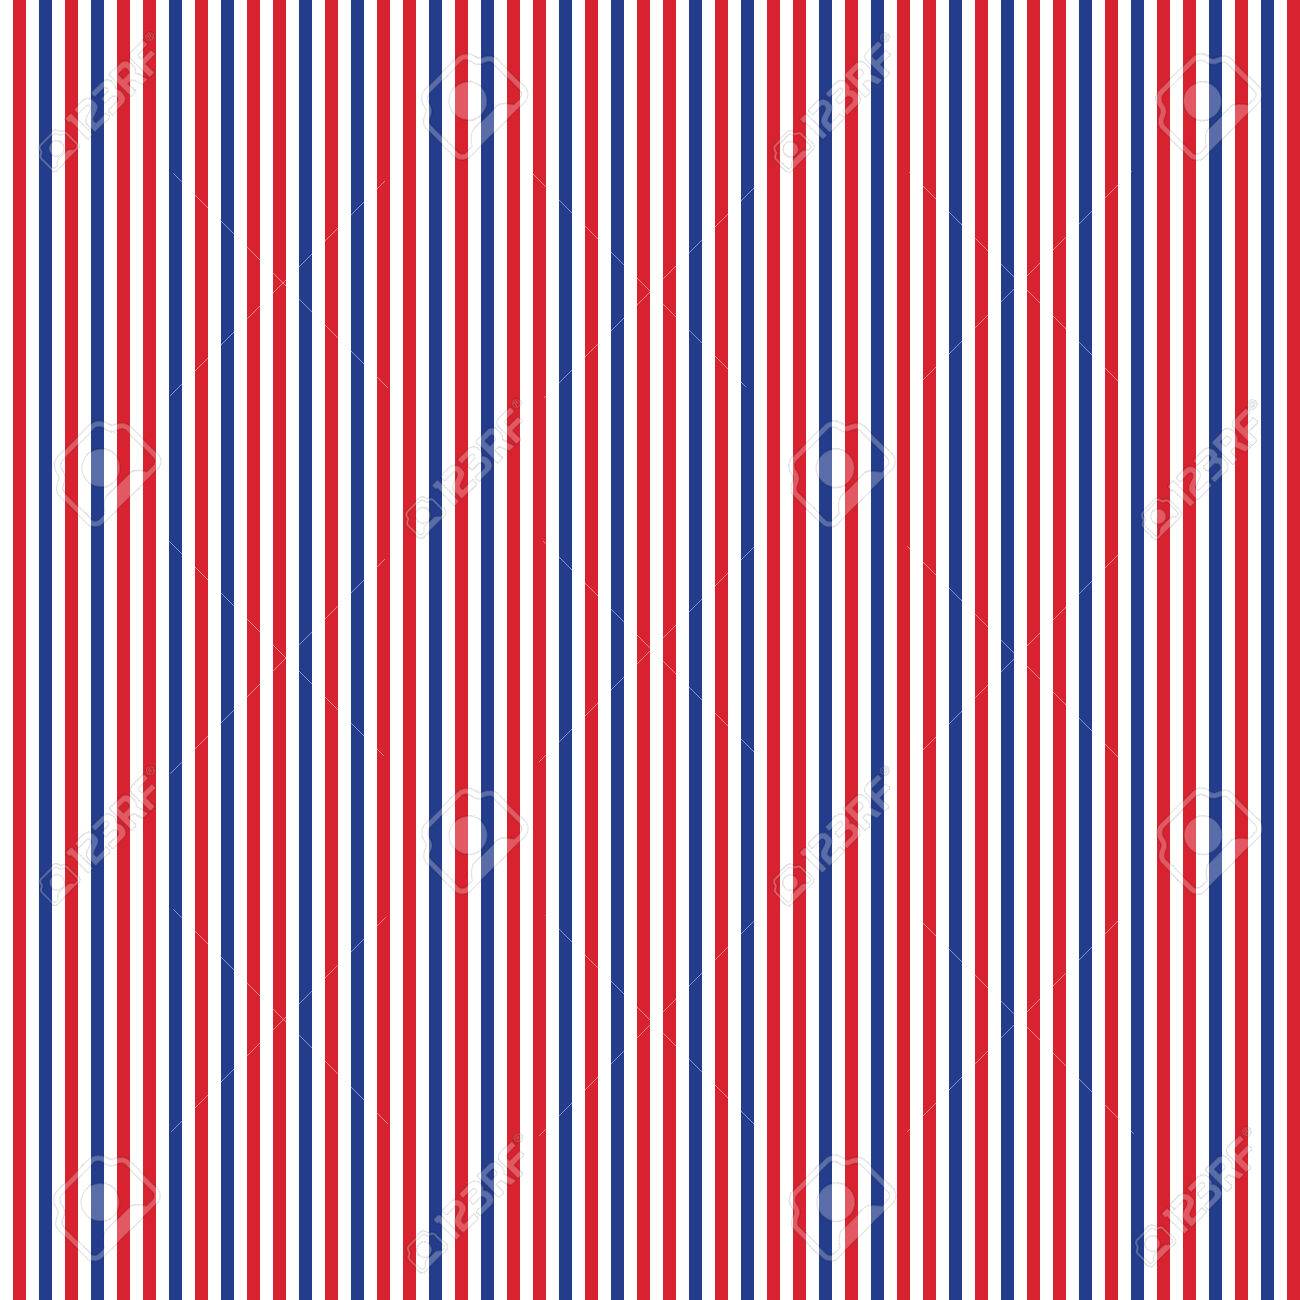 Patriotic Red White Blue Geometric Seamless Pattern Vector Illustration With American Symbol